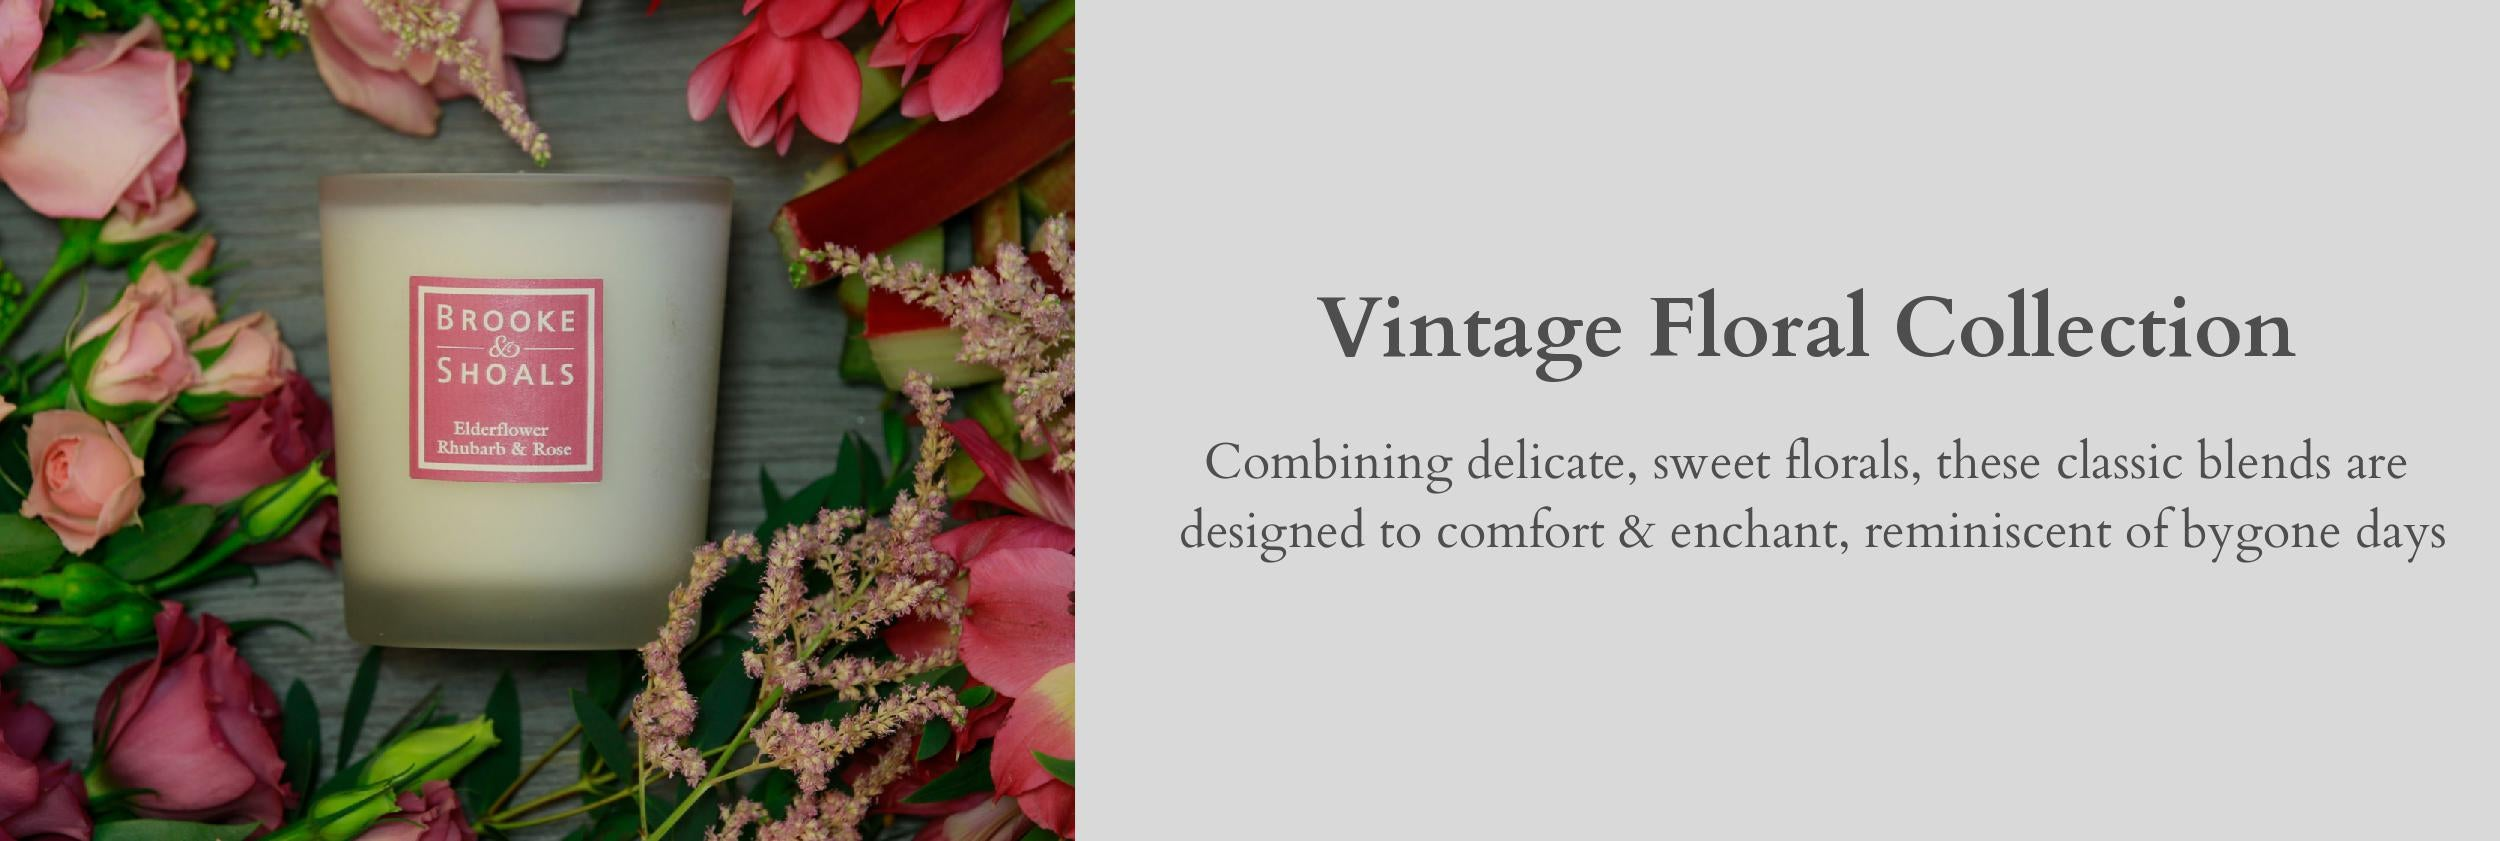 Brooke & Shoals - Vintage Floral Collection